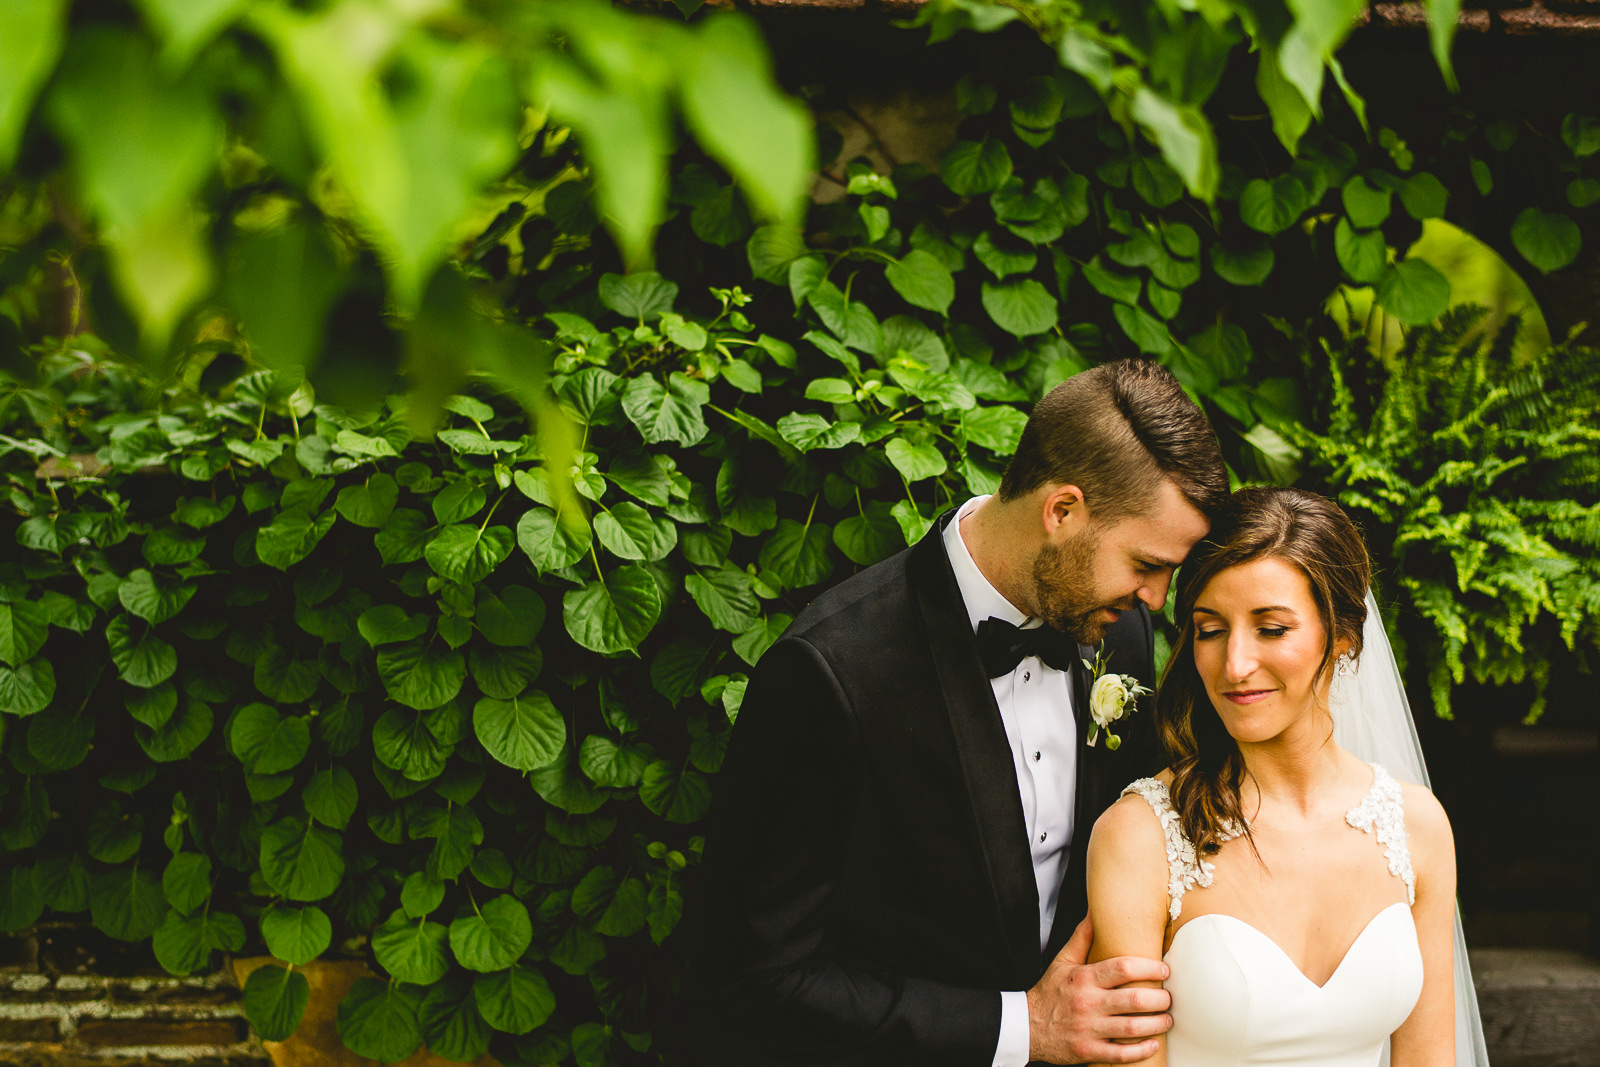 40 club of hillbrook wedding photographers - Club of Hillbrook Wedding // Jenna + Ben